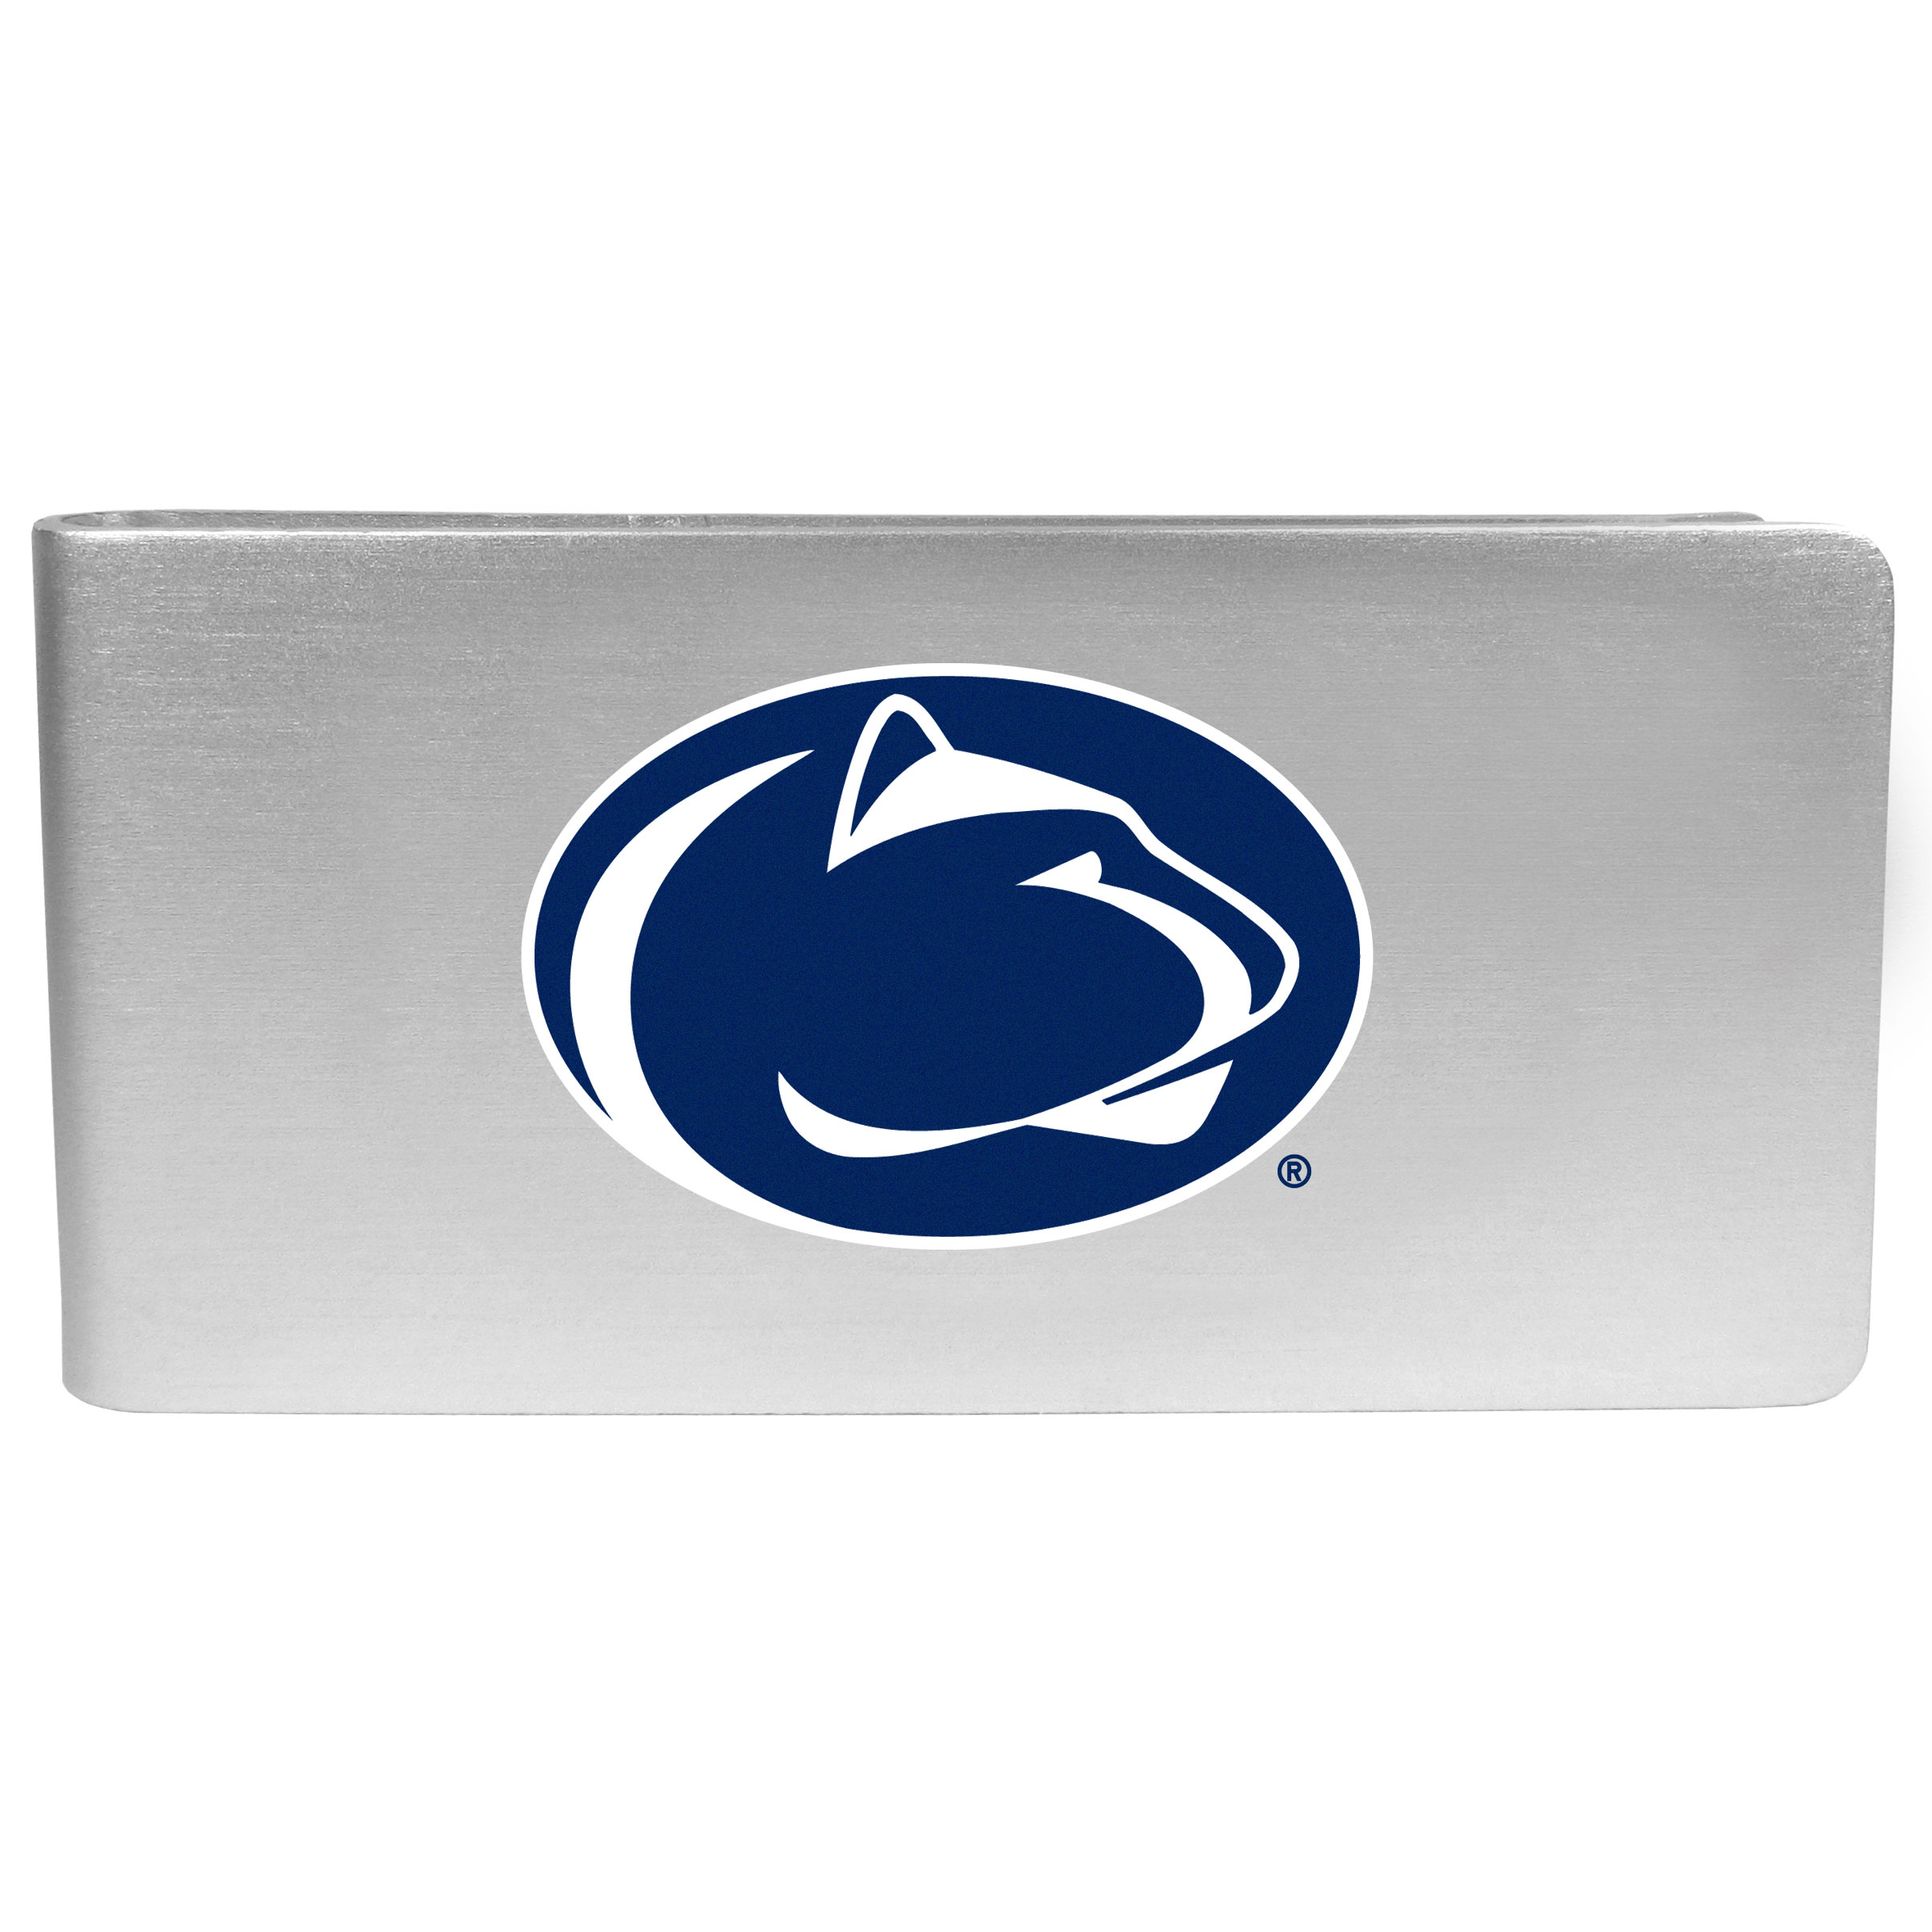 Penn St. Nittany Lions Logo Money Clip - Our brushed metal money clip has classic style and functionality. The attractive clip features the Penn St. Nittany Lions logo expertly printed on front.